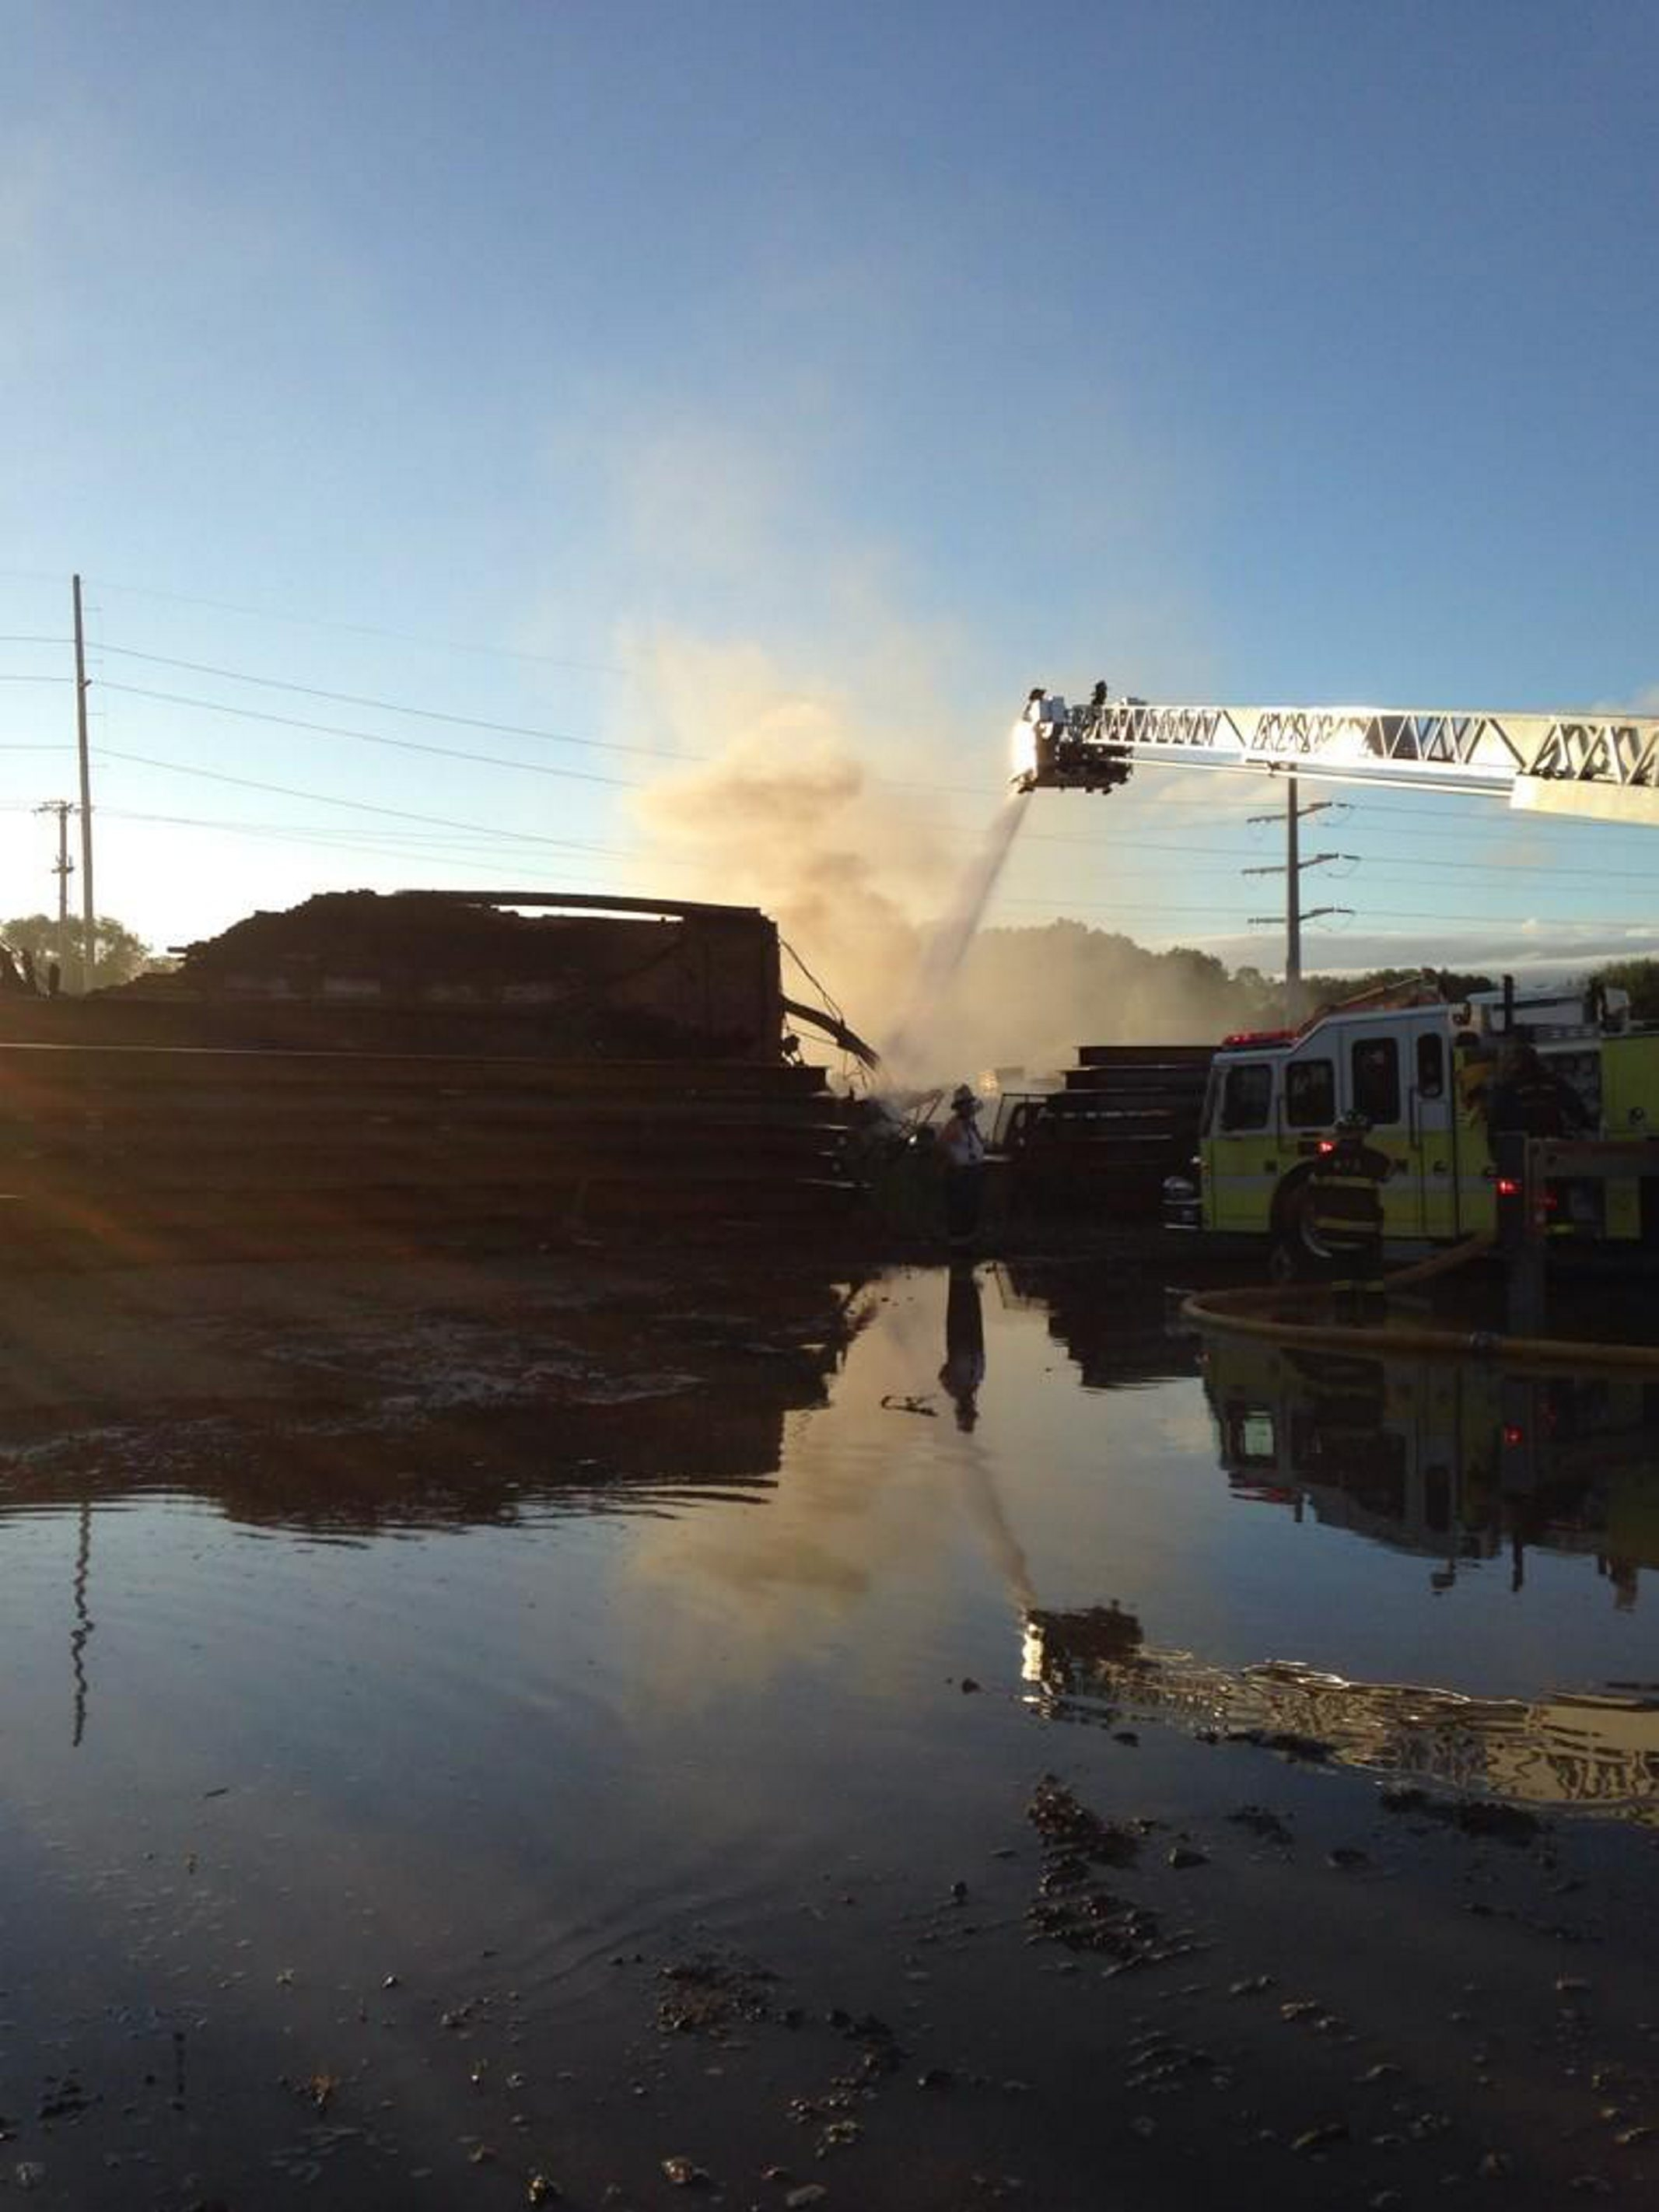 A blaze at a warehouse in Blasdell brought 70 firefighters to the scene. Crews this morning work at the scene. (Lisa Khoury)